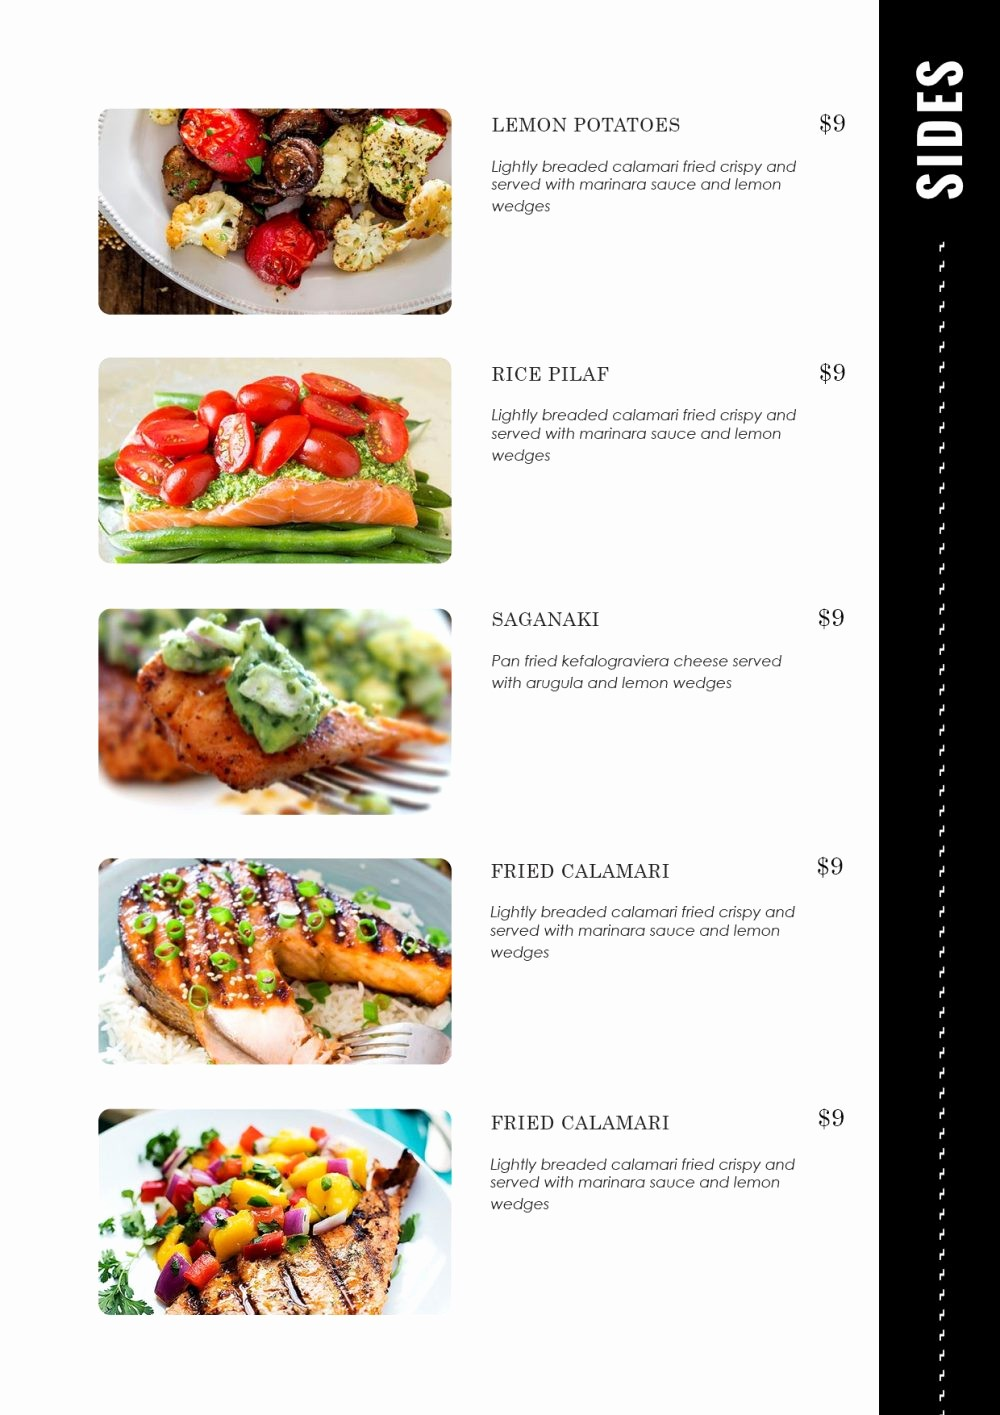 Restaurant Menu Template Microsoft Word Elegant Design & Templates Menu Templates Wedding Menu Food